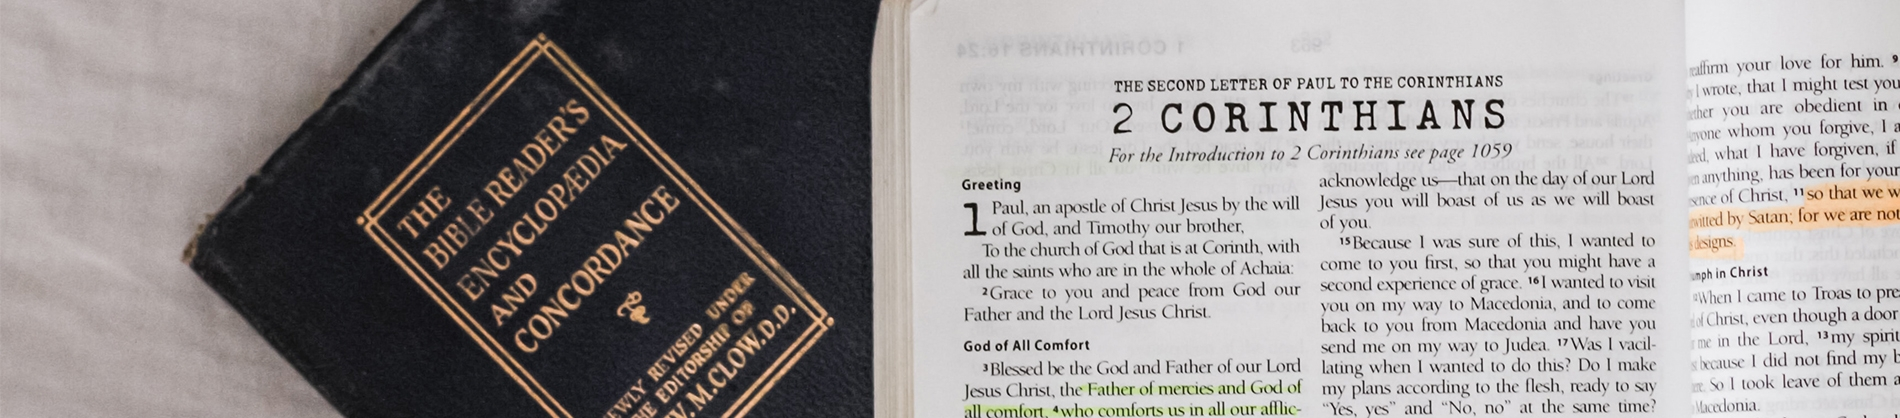 A bible Encyclopaedia and open bible